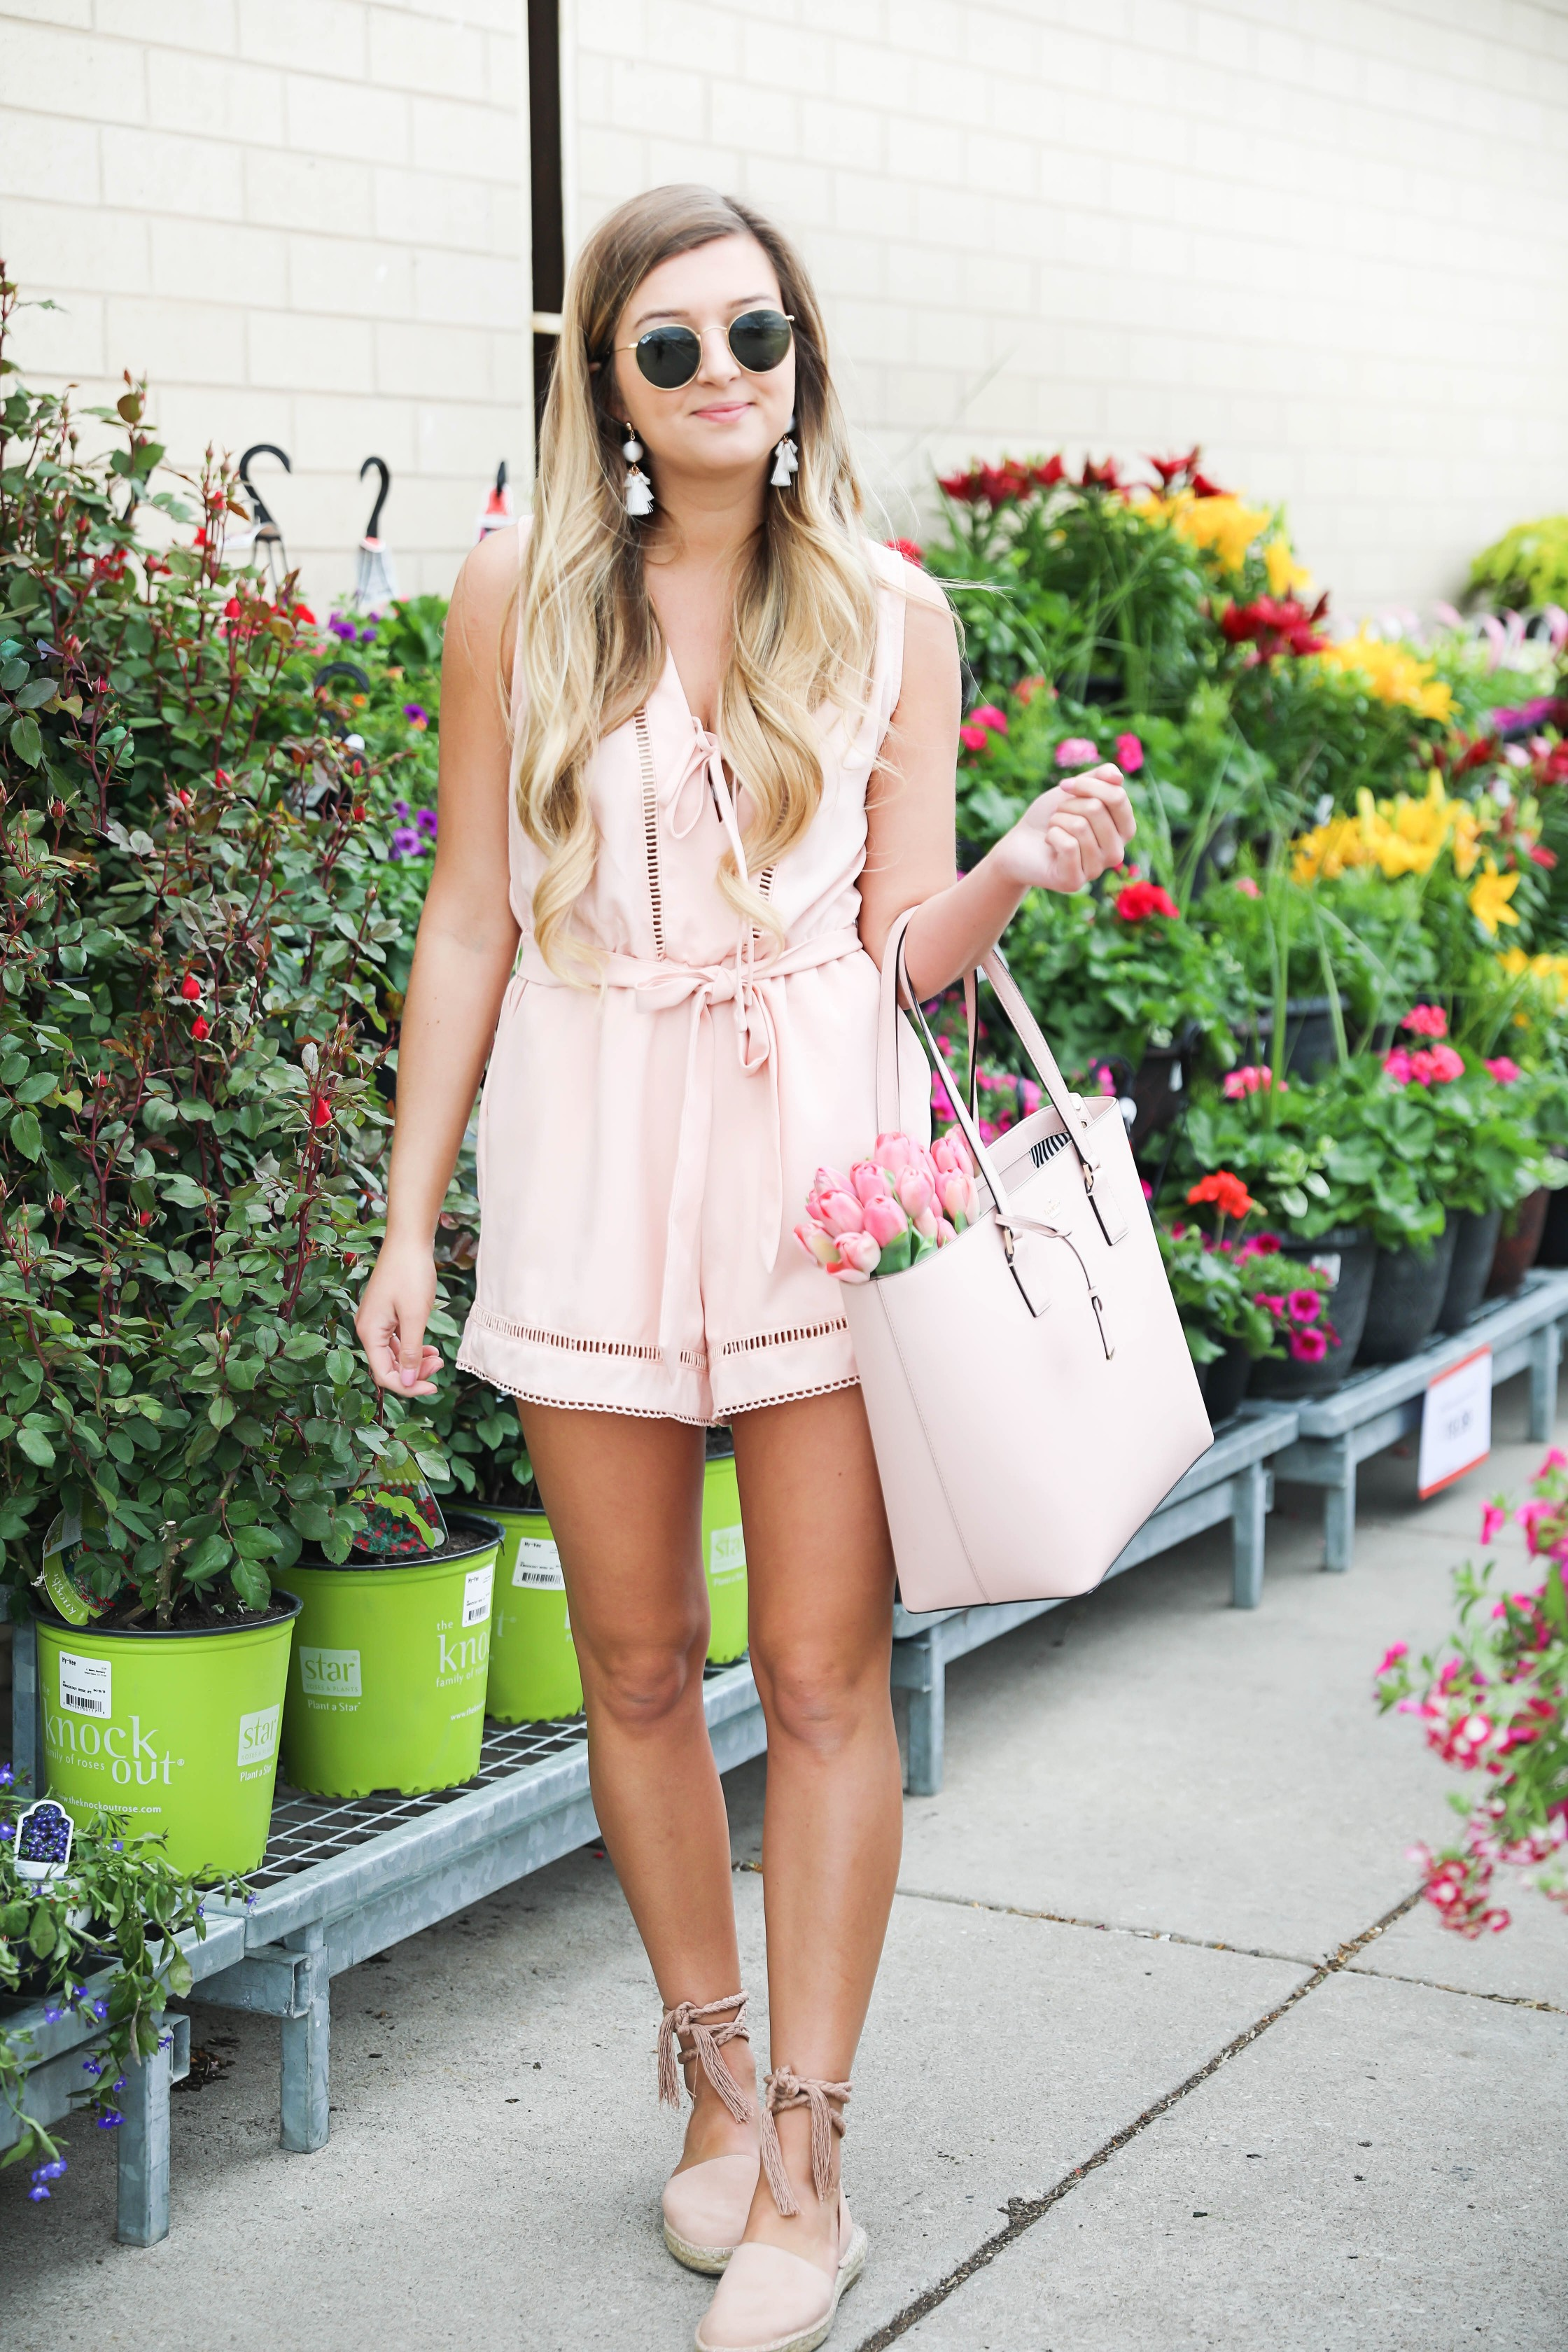 Pink romper with a cinched waist paired with a pink Kate Spade tote with flowers! These photos were taken at a flower nursery! Such a cute spring outfit, details on fashion blog daily dose of charm by lauren lindmark